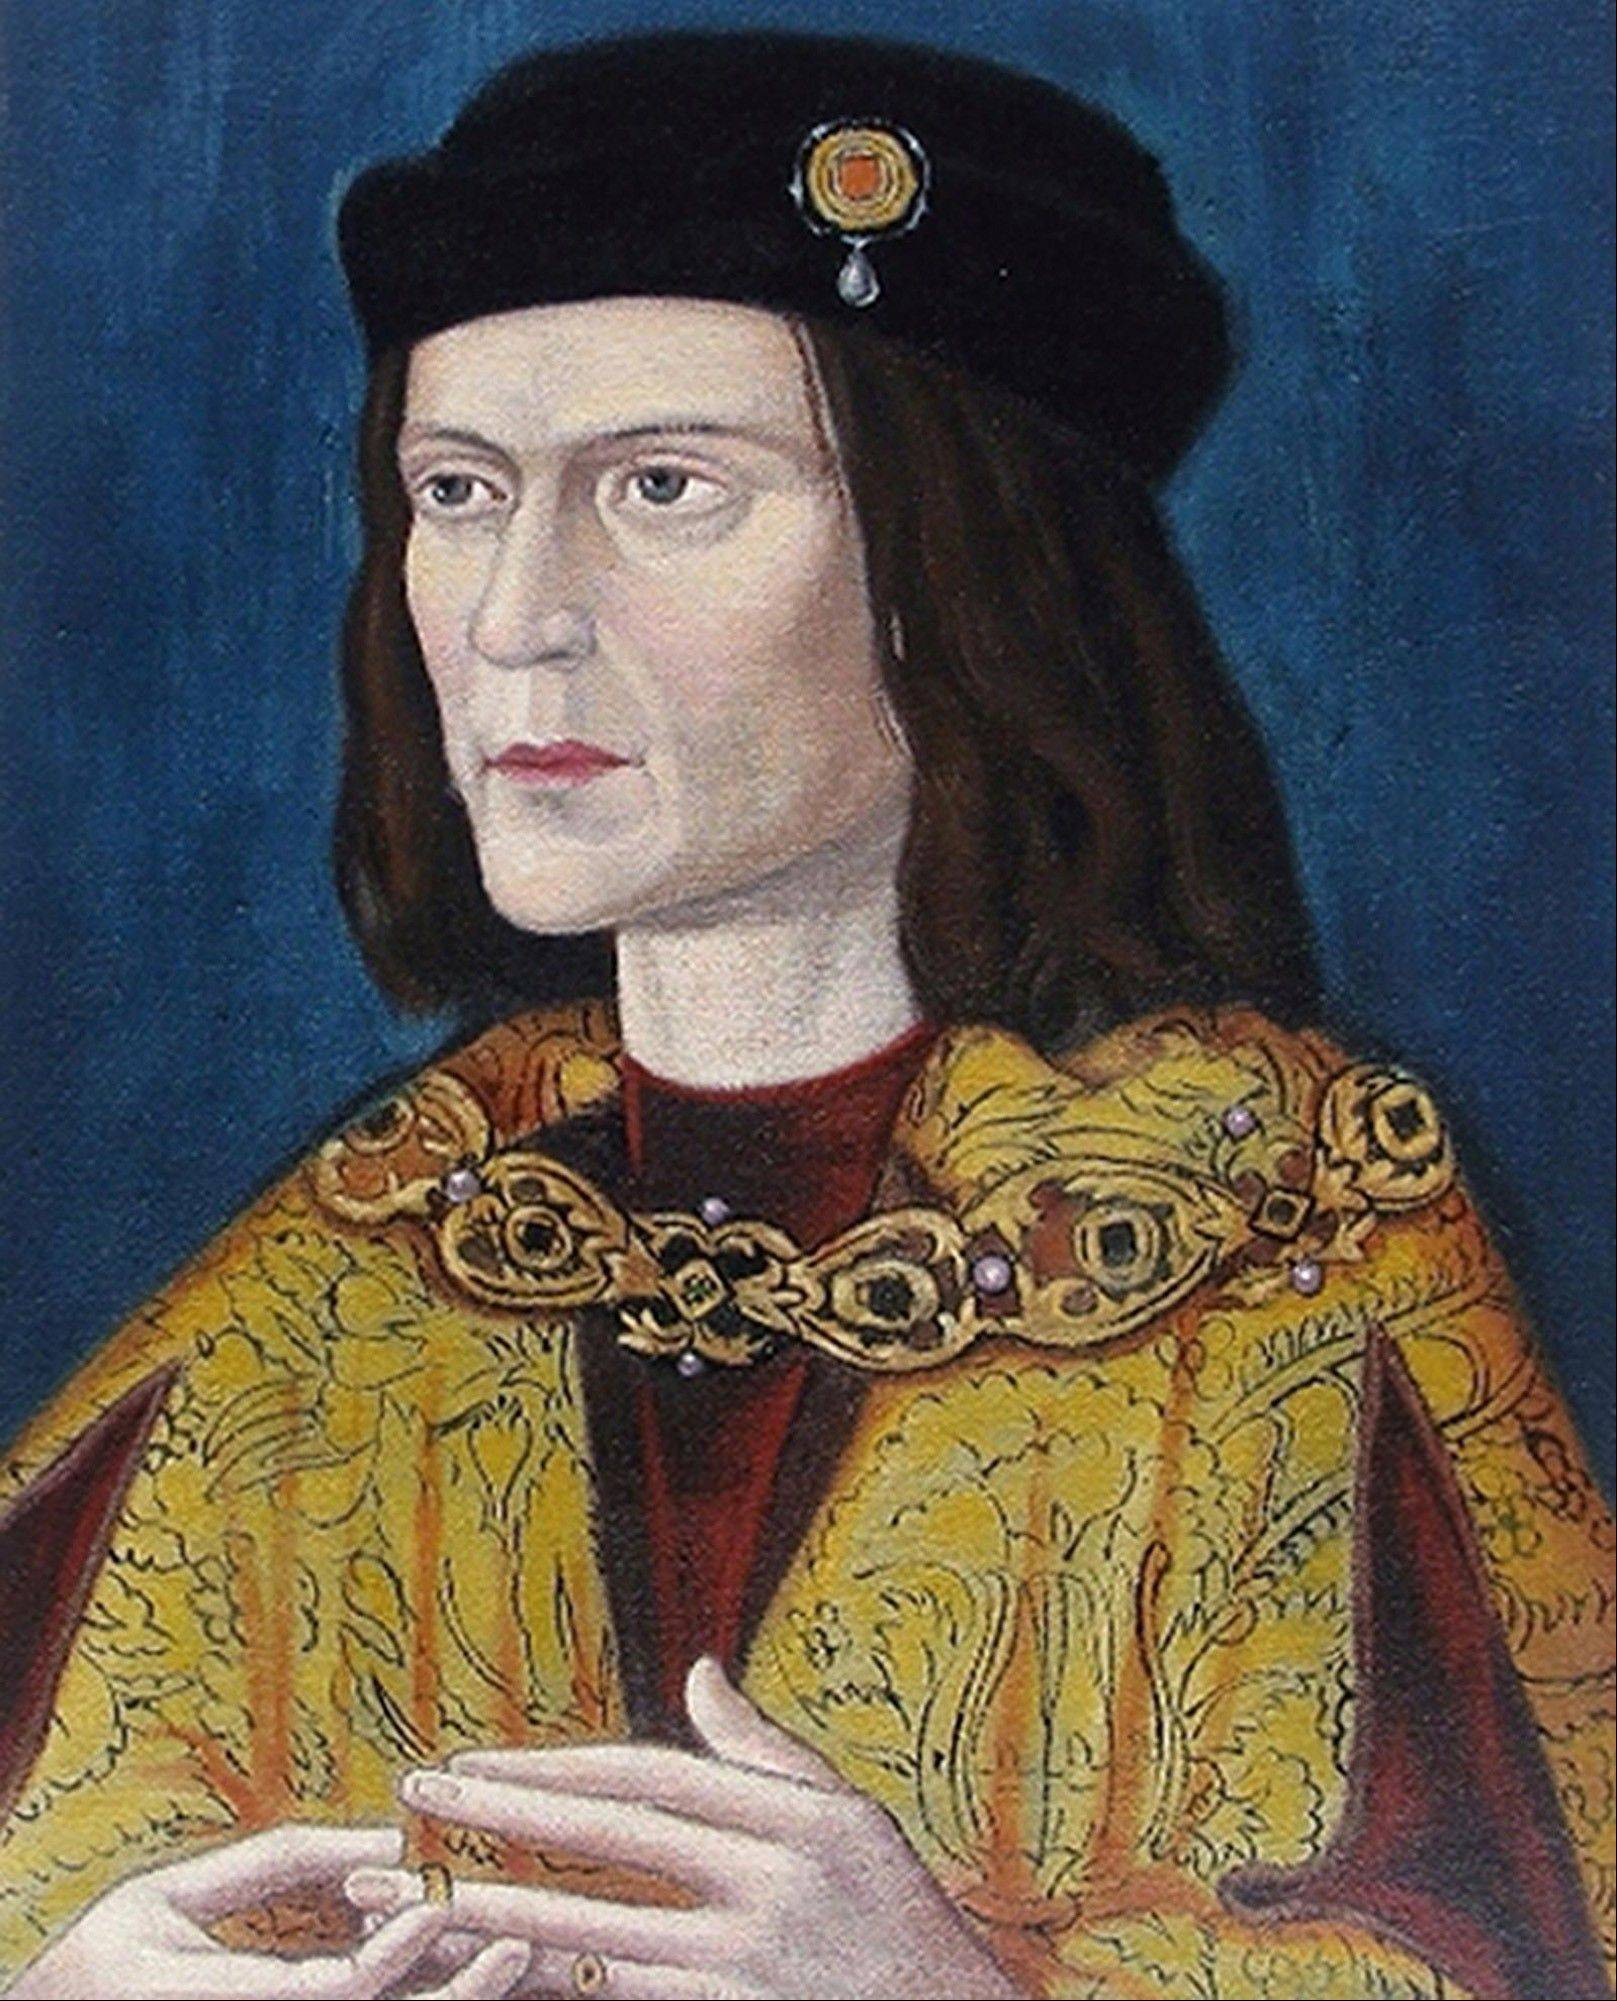 This photo made available by the University of Leicester, England, Monday of the earliest surviving portrait of Richard III in Leicester Cathedral. Richard was immortalized in a play by Shakespeare as a hunchbacked usurper who left a trail of bodies -- including those of his two young nephews, murdered in the Tower of London -- on his way to the throne.